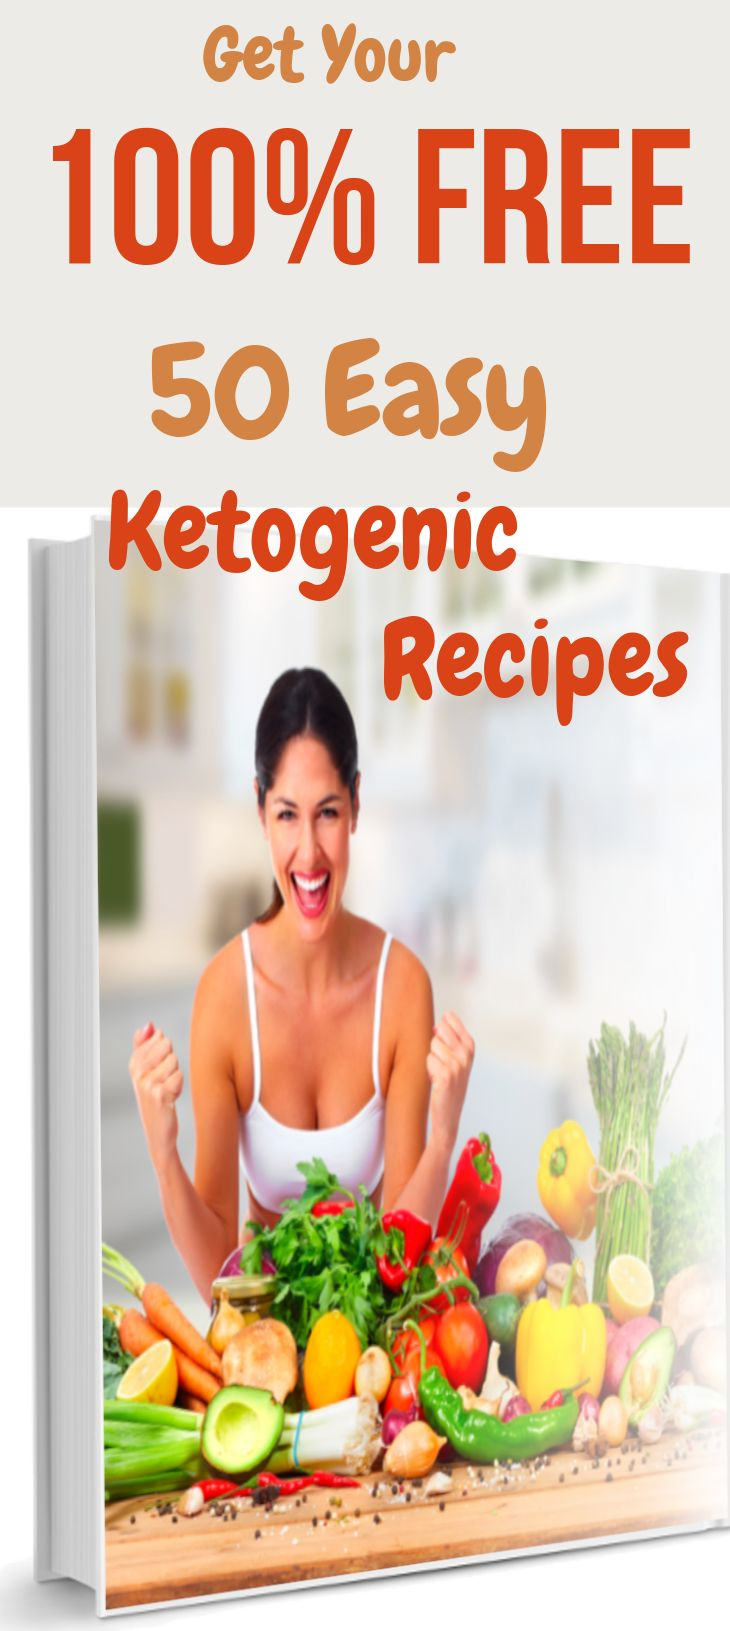 Simply Tasty Ketogenic Cookbook 100% FREE!